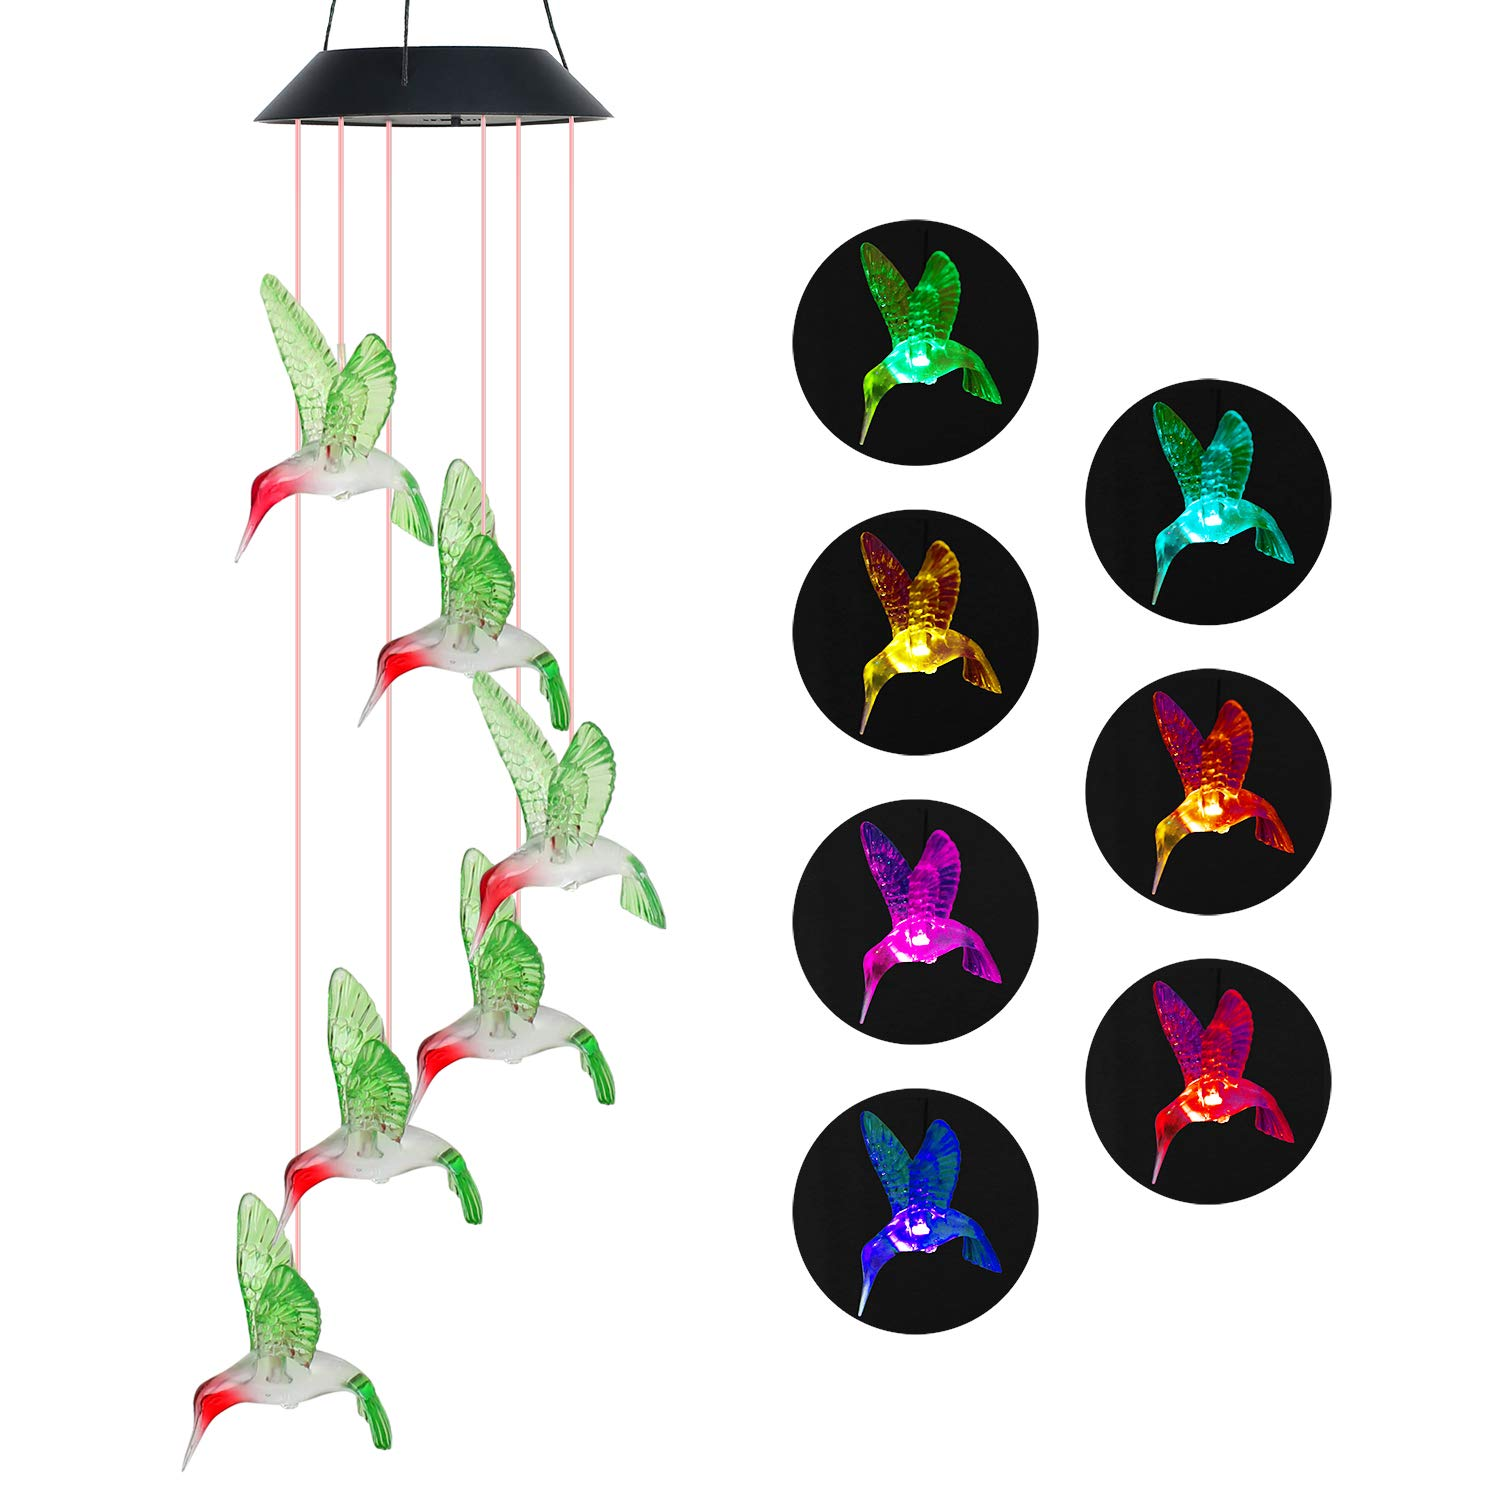 Wind Chime Outdoor Color-Changing Waterproof Mobile Romantic Led Solar Powered Hummingbird Wind Chimes Lights for Home, Indoor, Yard, Patio, Night Garden, Party, Valentines Gift, Festival Decor